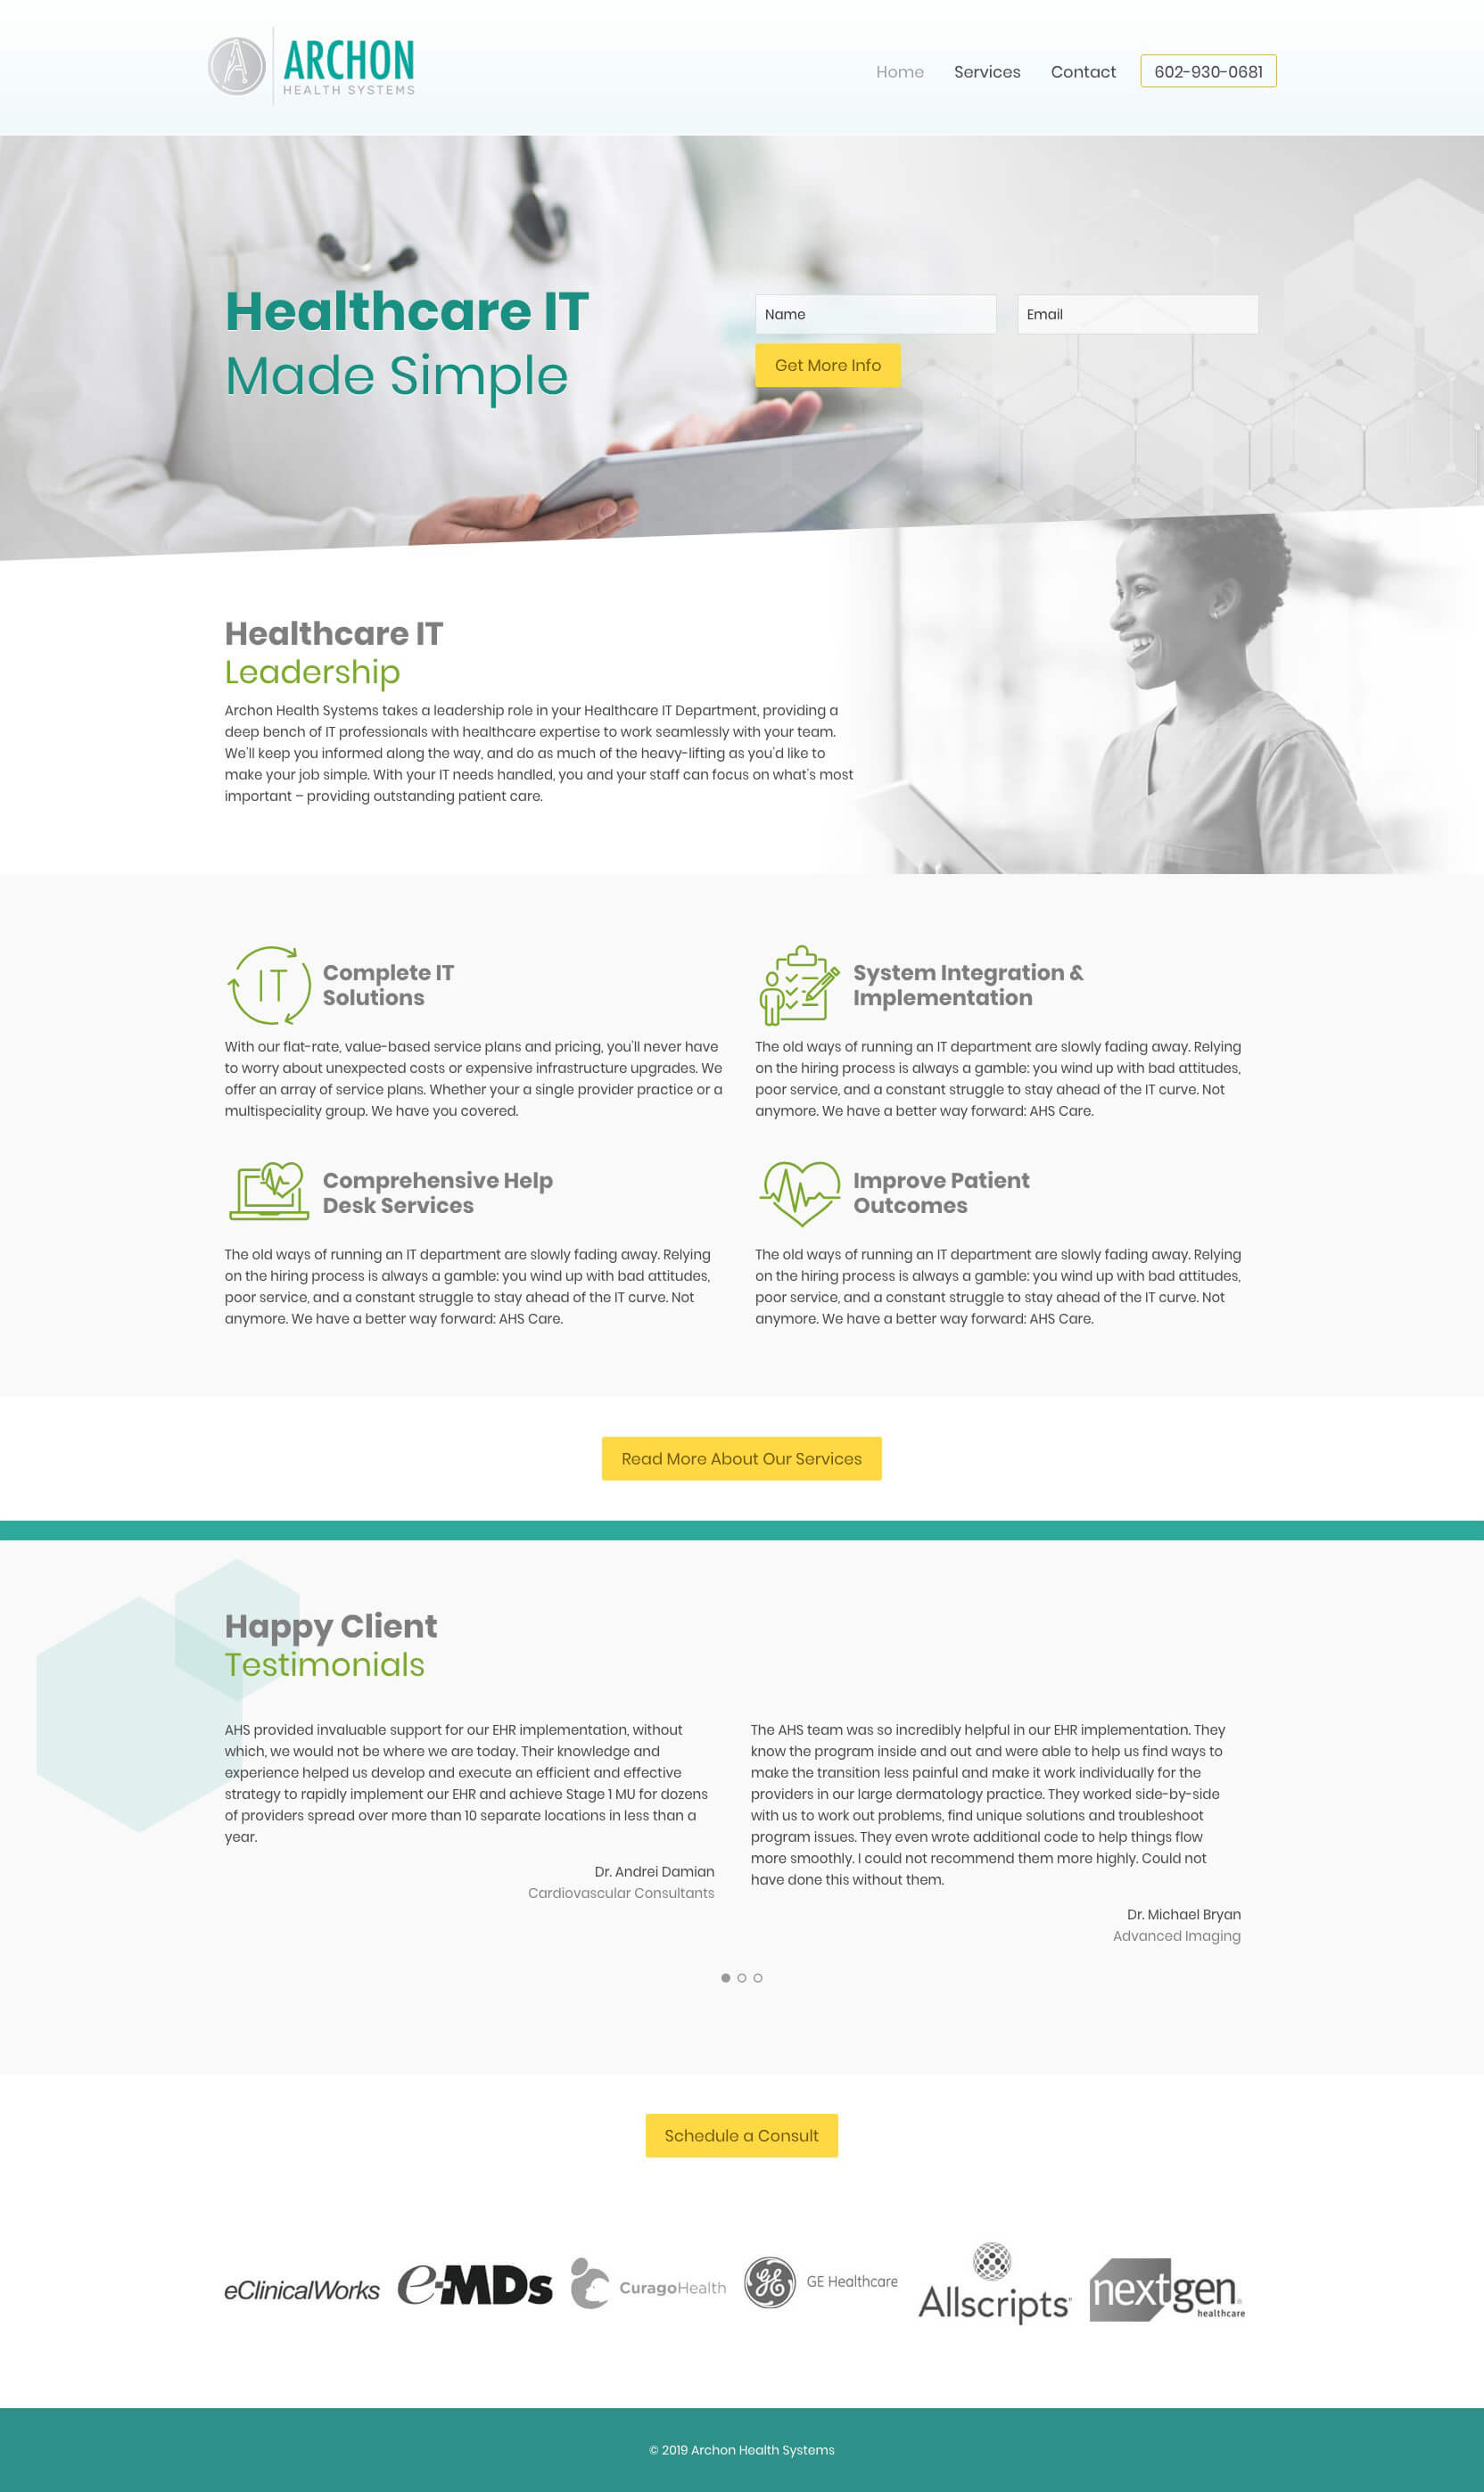 Web Design for Archon Health Systems